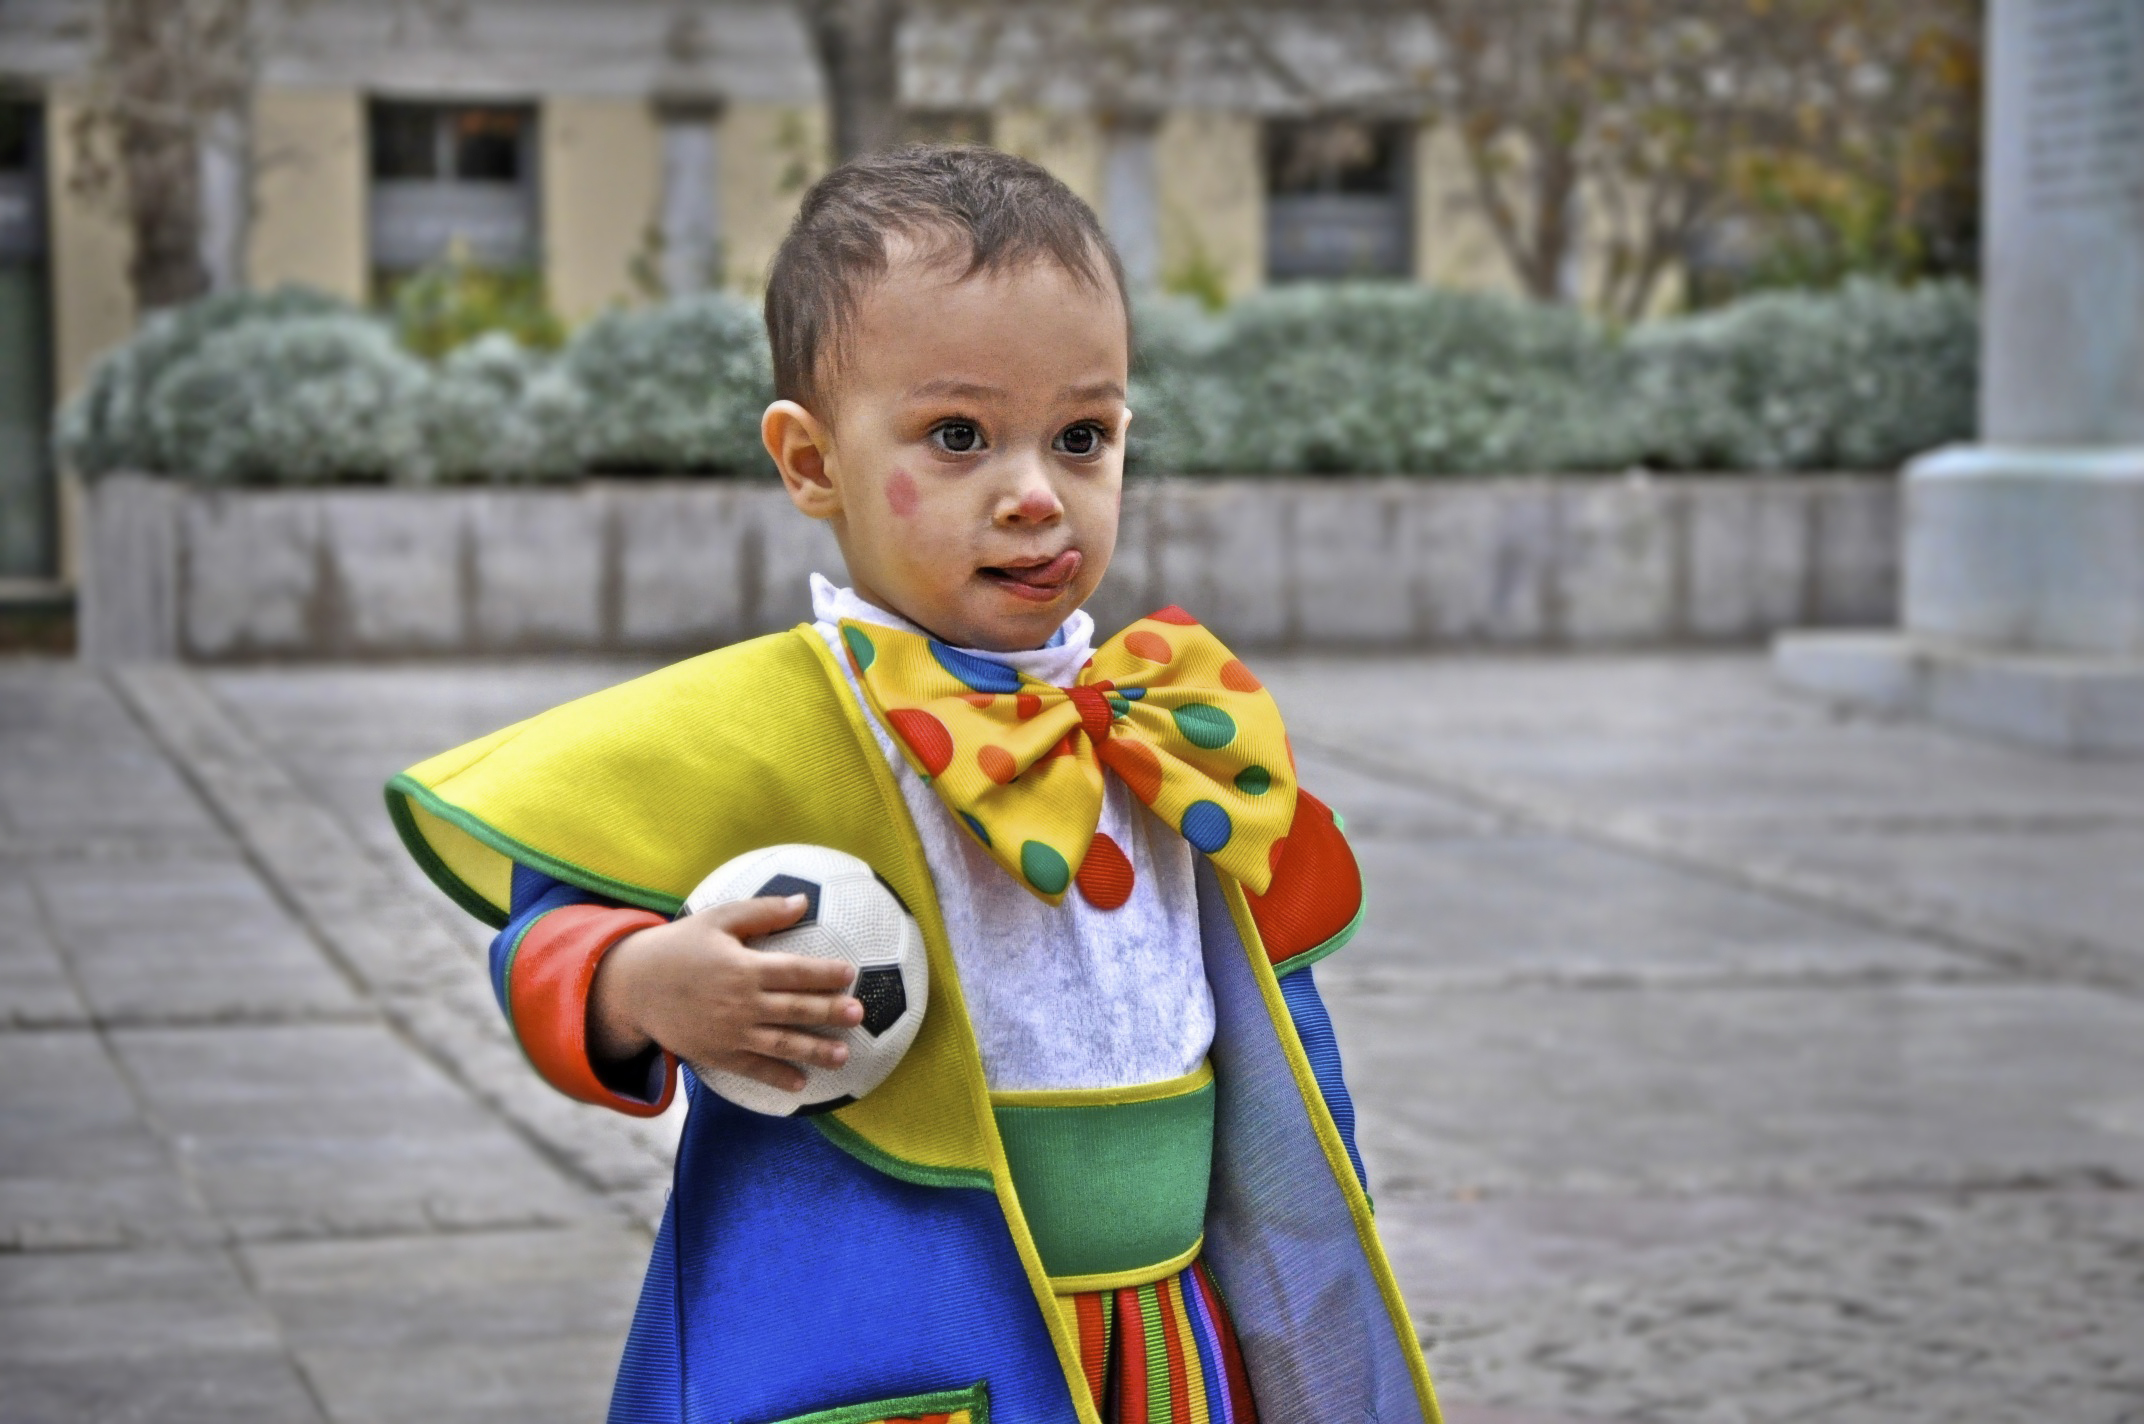 clown-kid_5329299202_o copy.jpg